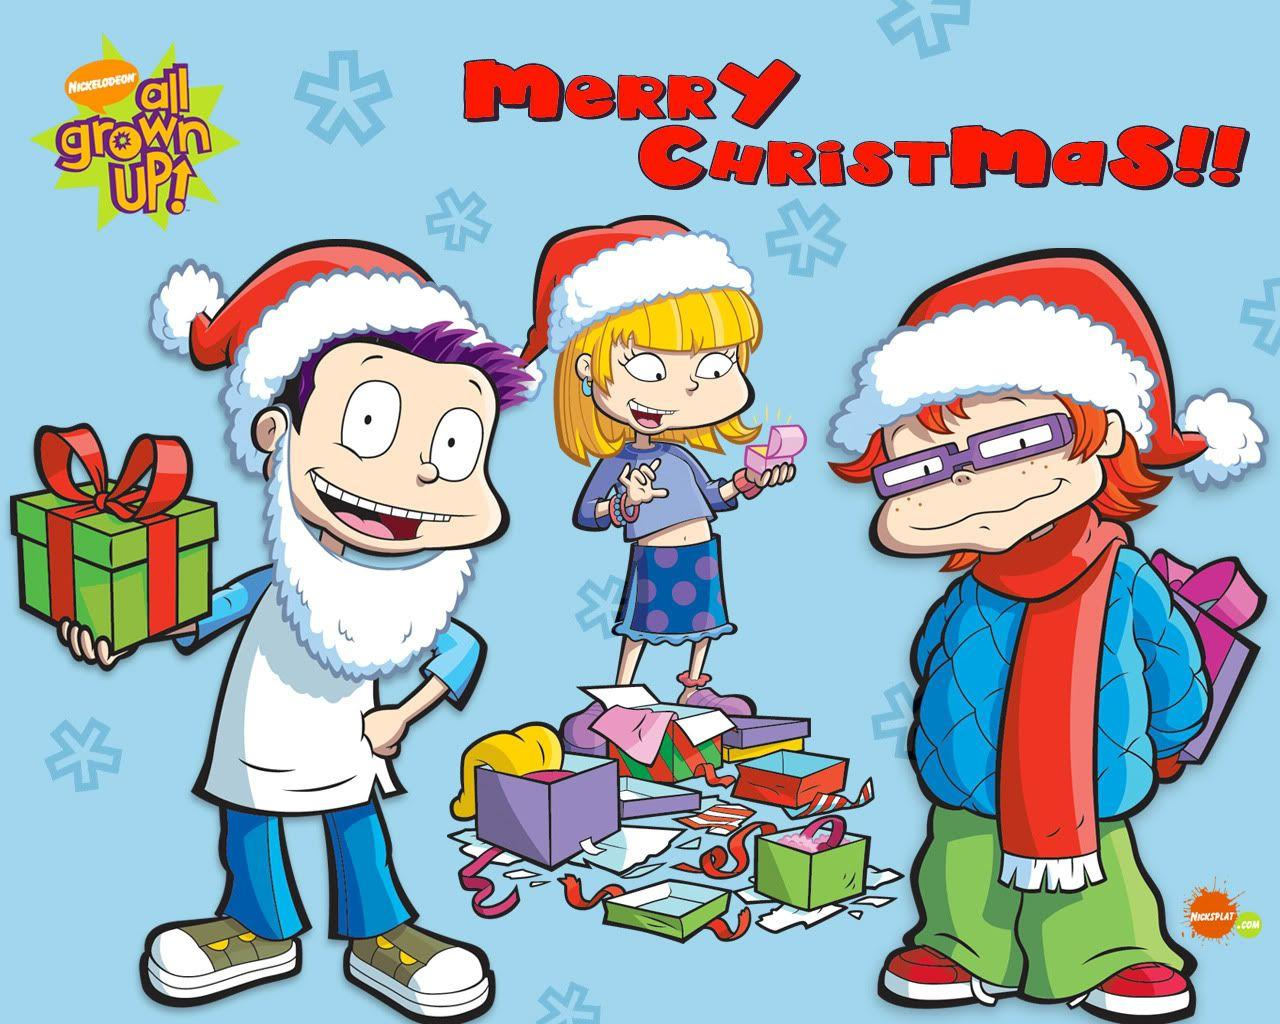 Rugrats All Grown Up phil | Rug Rats All Grown Up Christmas ...